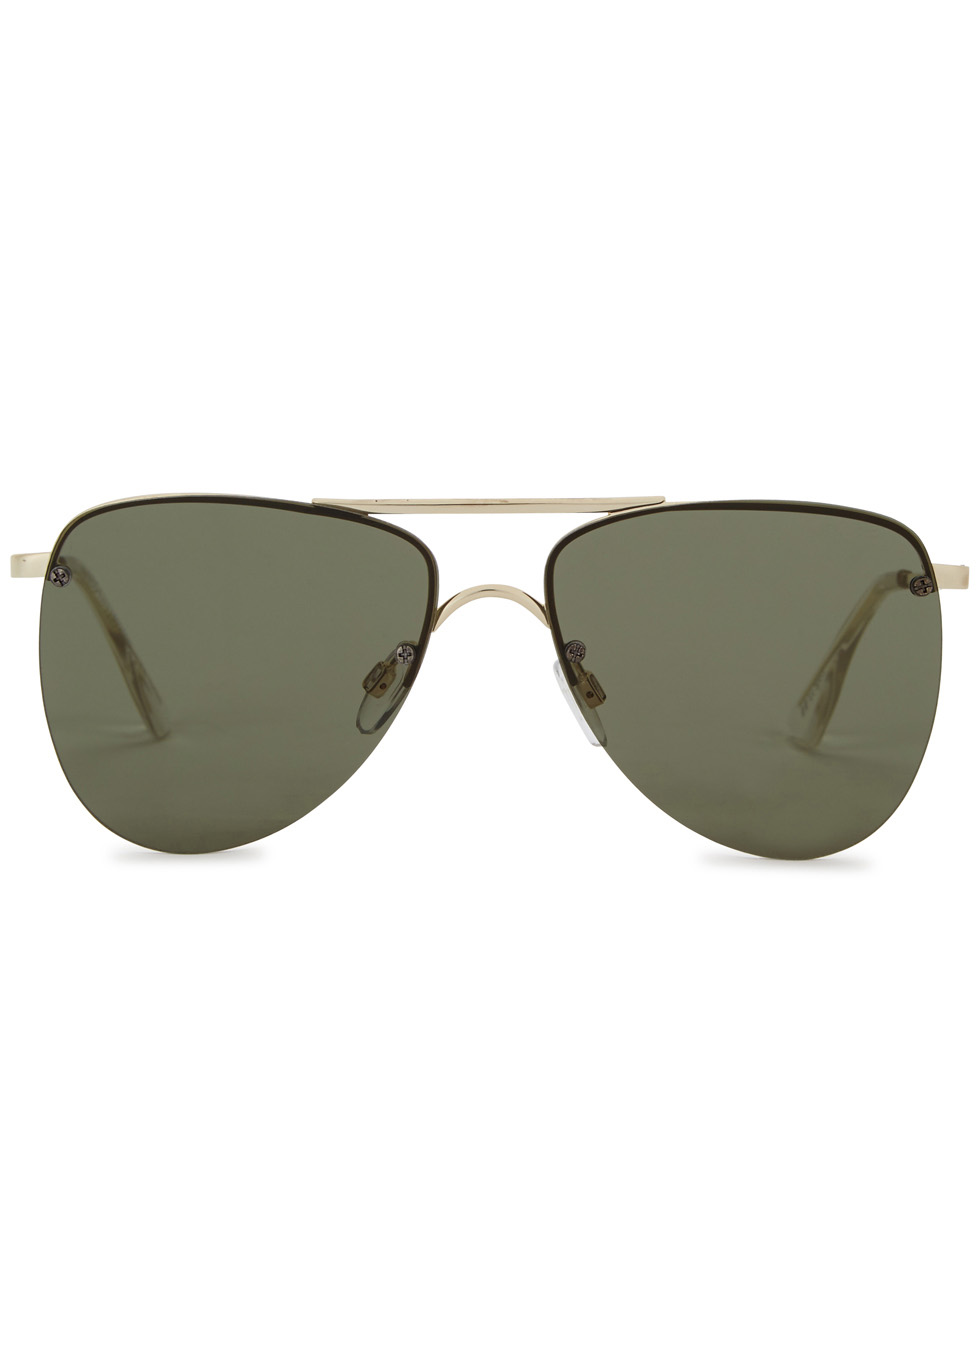 The Prince aviator-style sunglasses - Le Specs